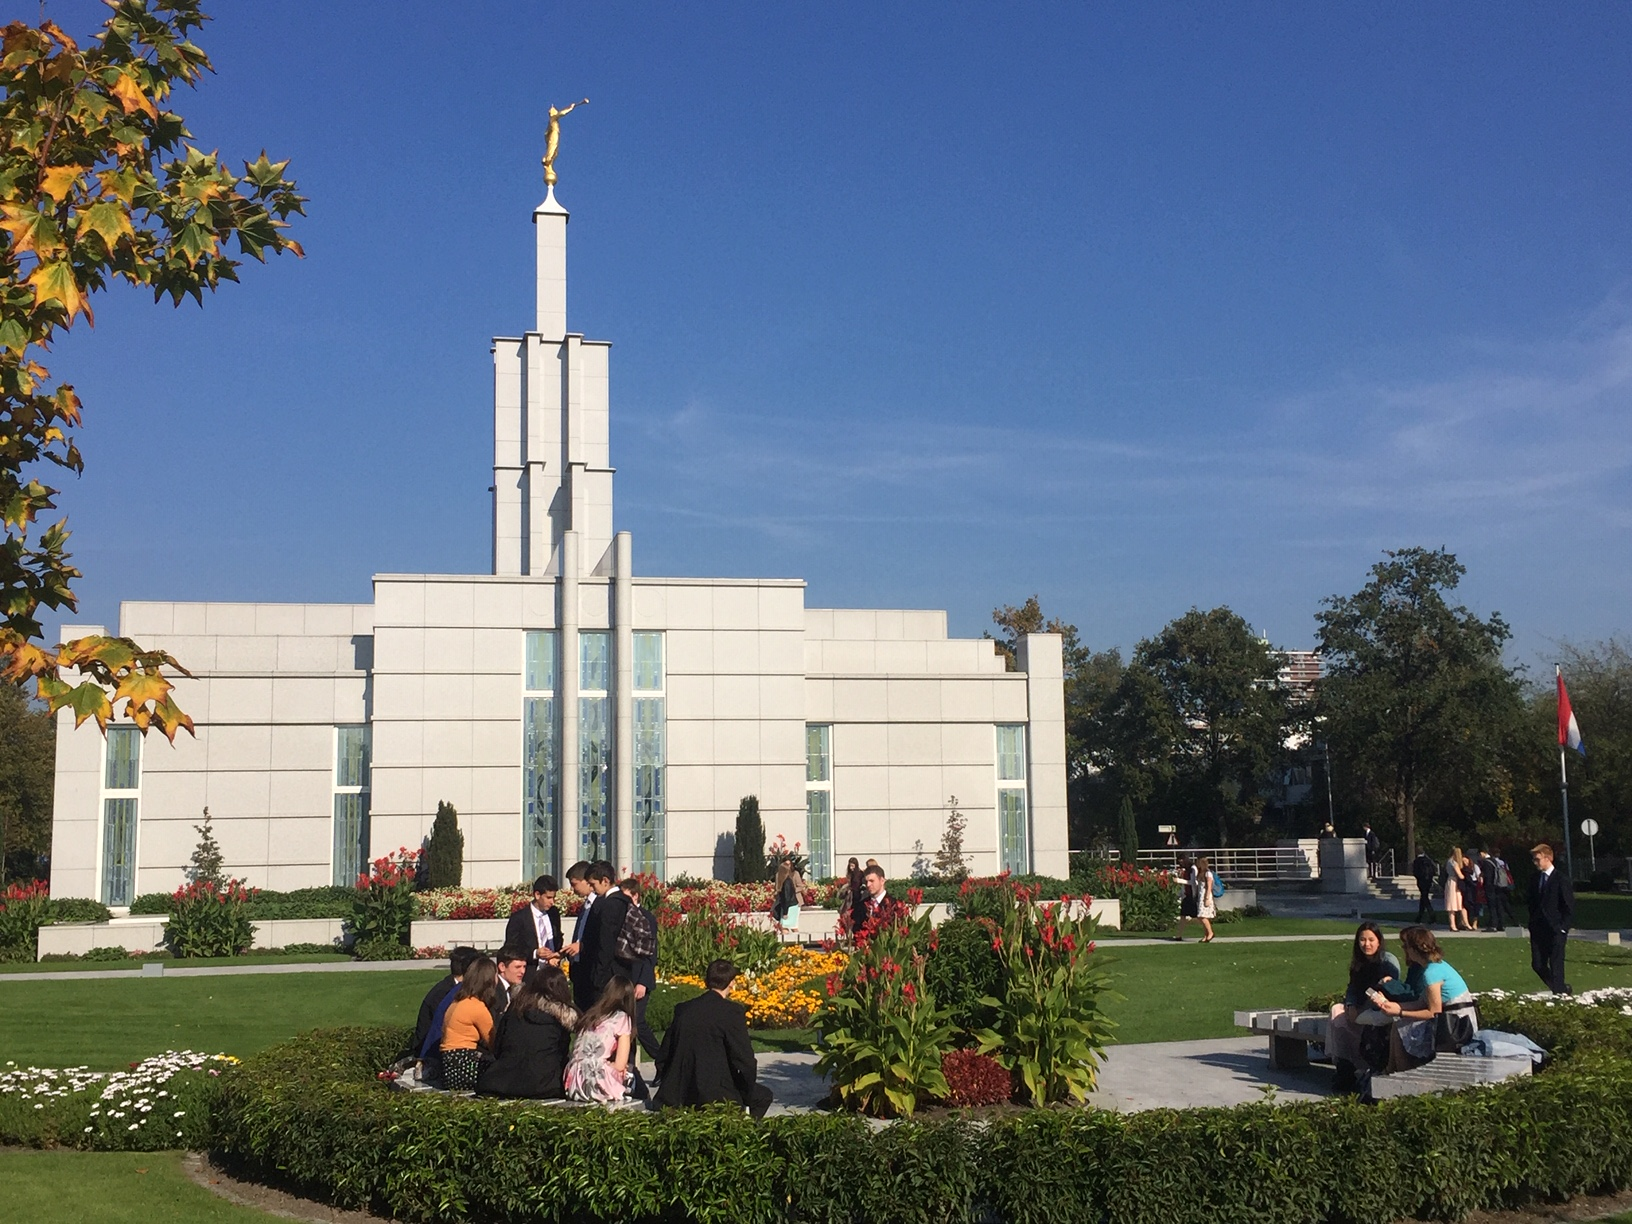 Youth from the Friedrichsdorf Germany Stake sit on the grounds outside The Hague Netherlands Temple during the stake's October 2018 temple trip.